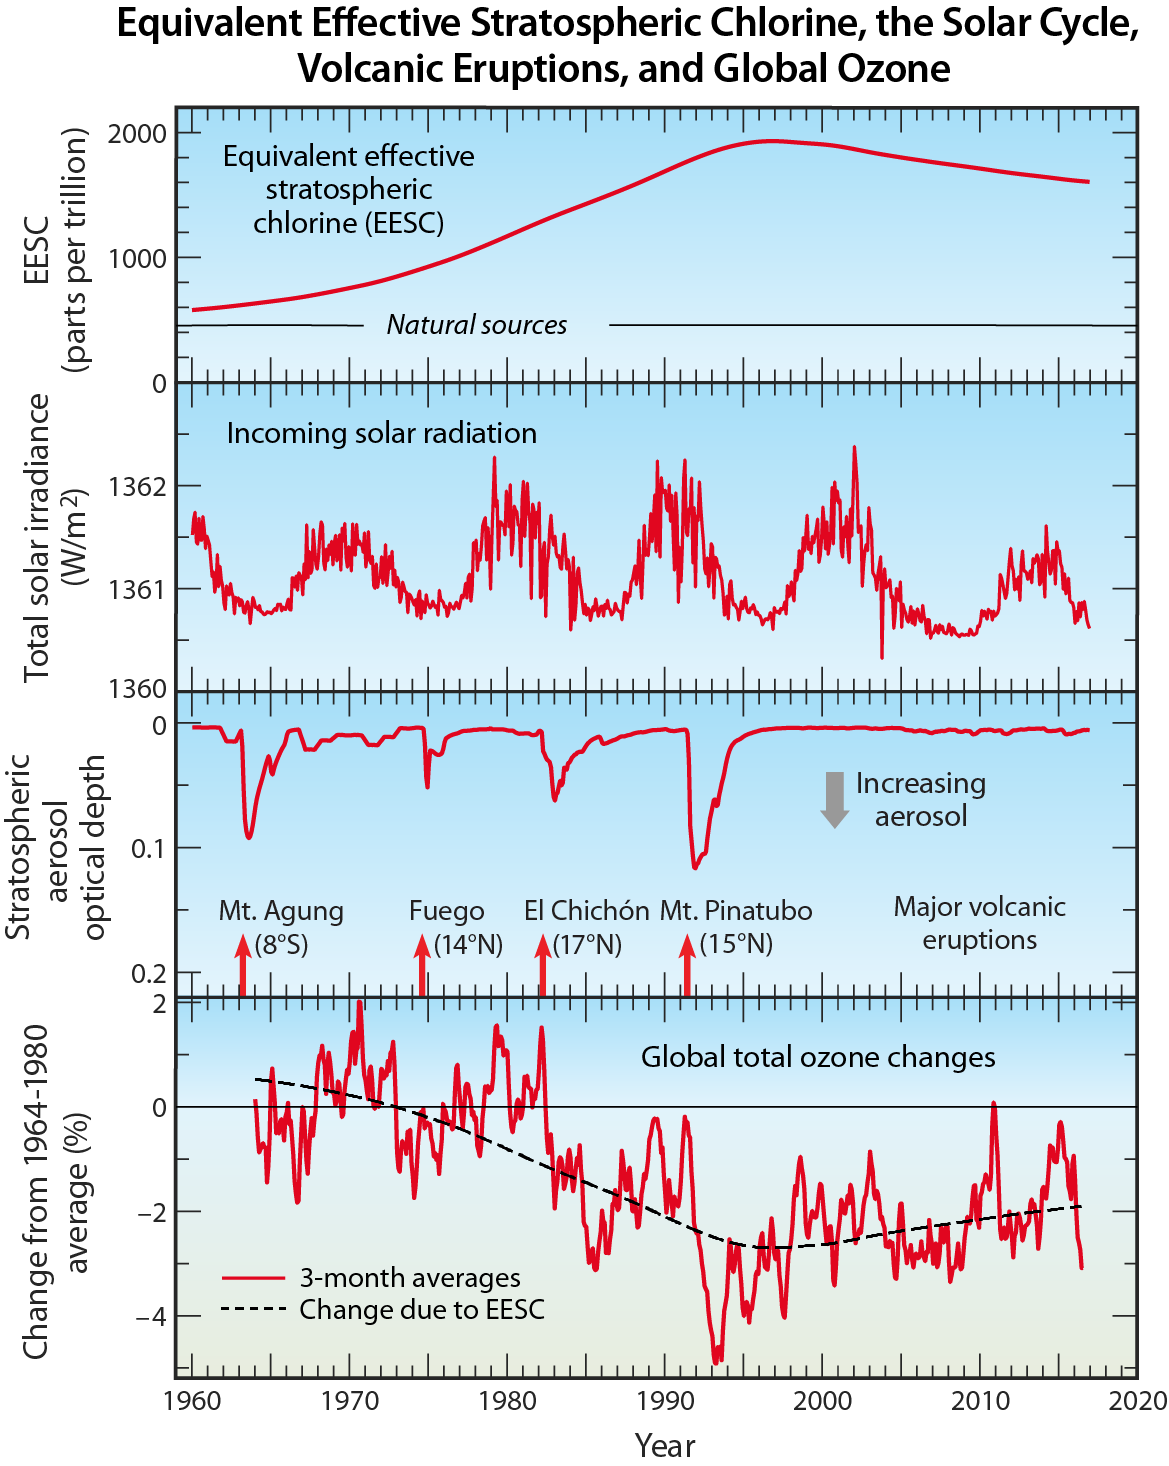 Equivalent Effective Stratospheric Chlorine, the Solar Cycle, Volcanic Eruptions, and Global Ozone